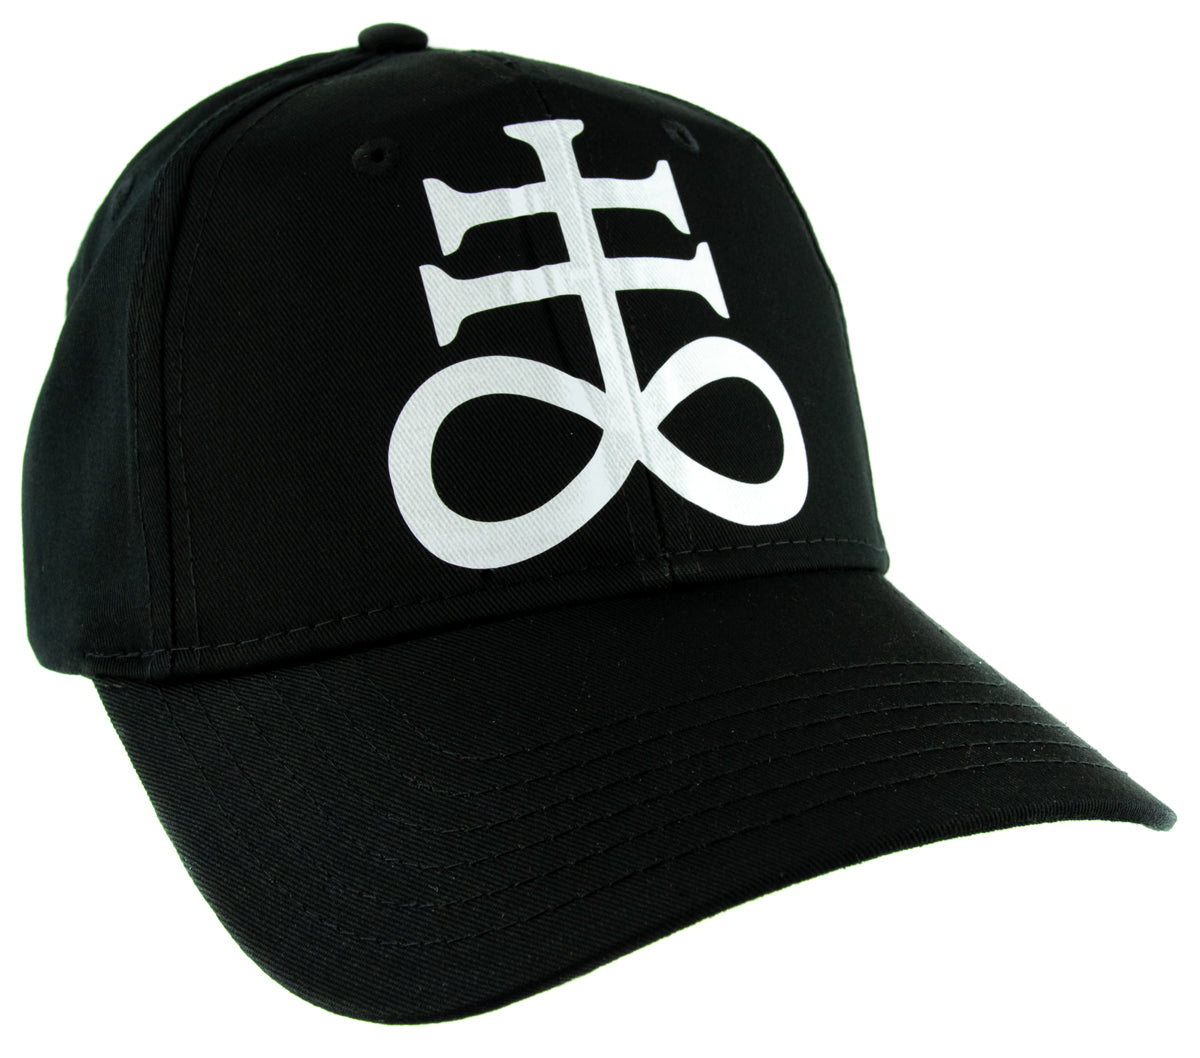 Brimestone Leviathan Cross Alchemy Symbol Hat Baseball Cap Occult Alternative Clothing Snapback